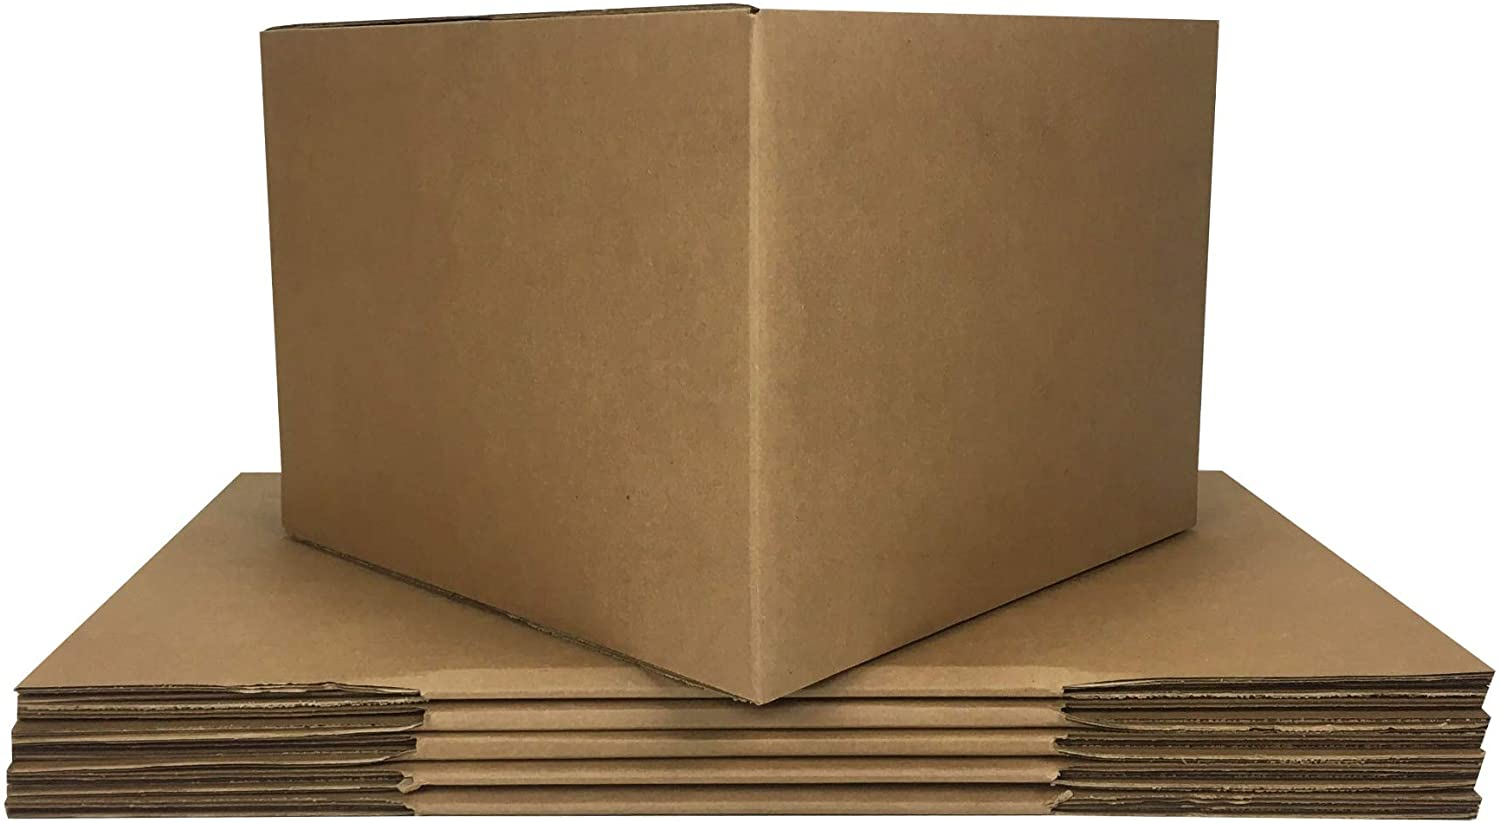 uBoxes Large Moving Boxes (6 Pack) 20x20x15-inches Cardboard Box